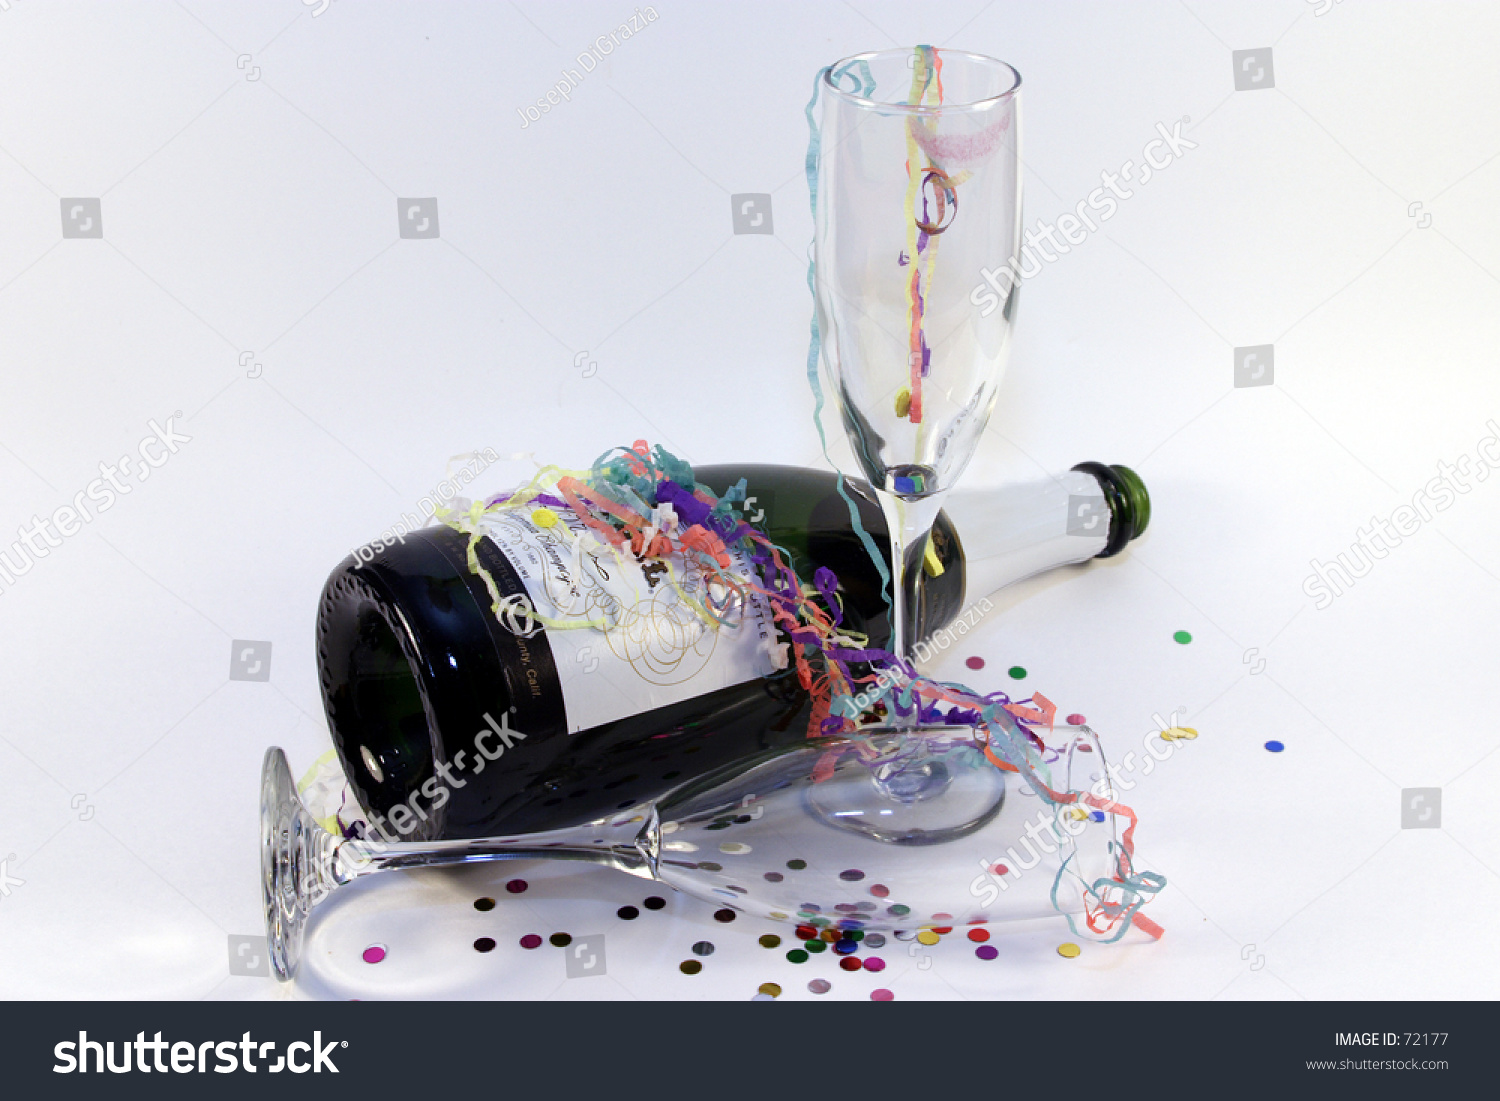 Empty Champagne Bottle With Used Glasses, Confetti, And Streamers